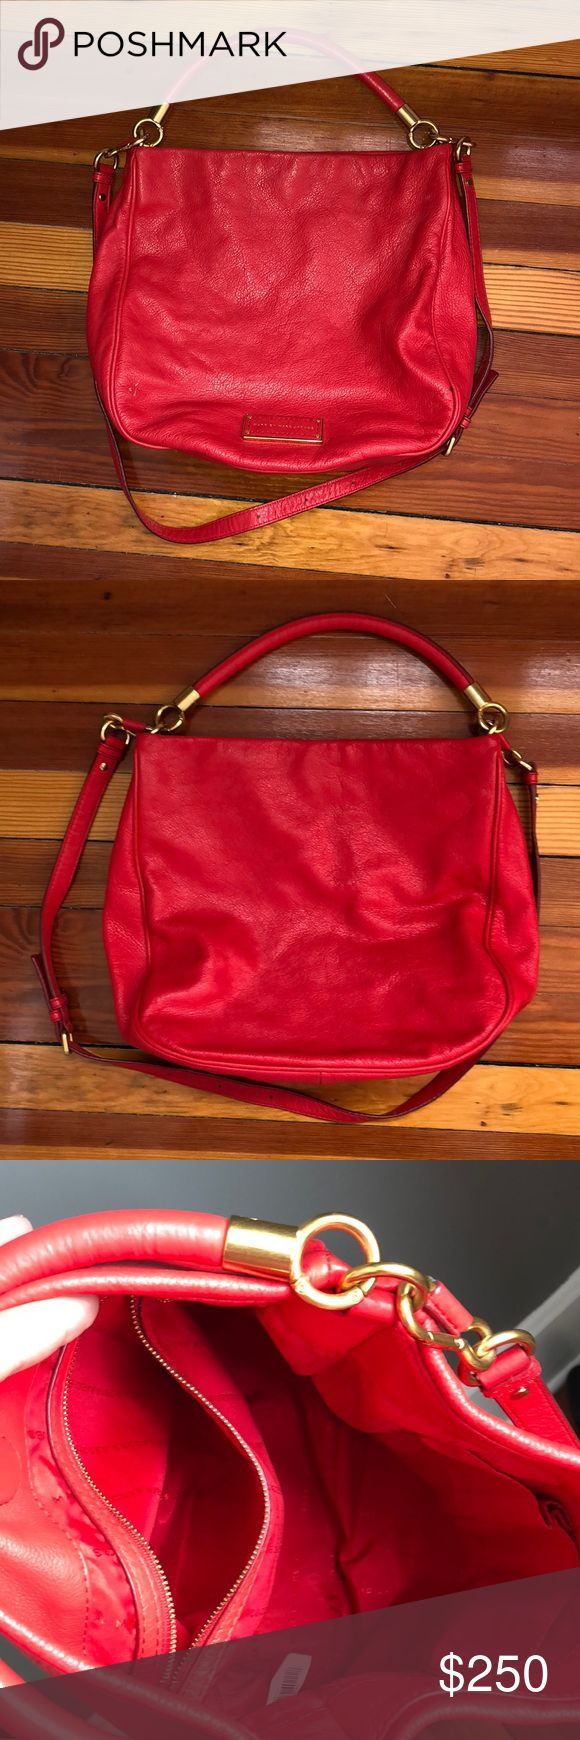 Marc Jacobs Red Leather Hobo Shoulder Bag Barely used Marc by Marc Jacobs Too Hot to Handle red genuine leather hobo shoulder bag. Only defects are pictured. Marc Jacobs Bags Shoulder Bags